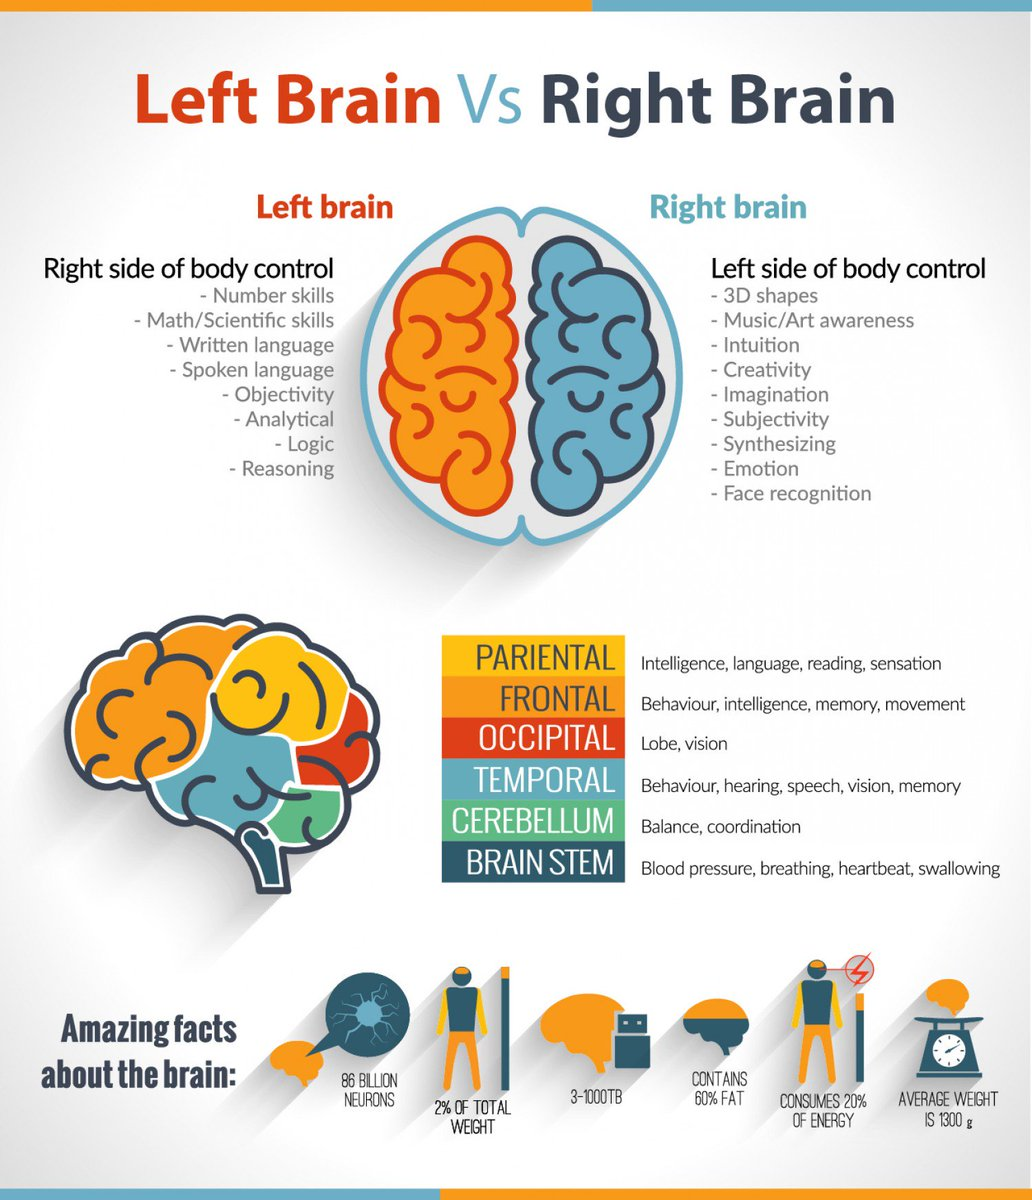 Aine Behan On Twitter Love Some Brain Fun Facts Check